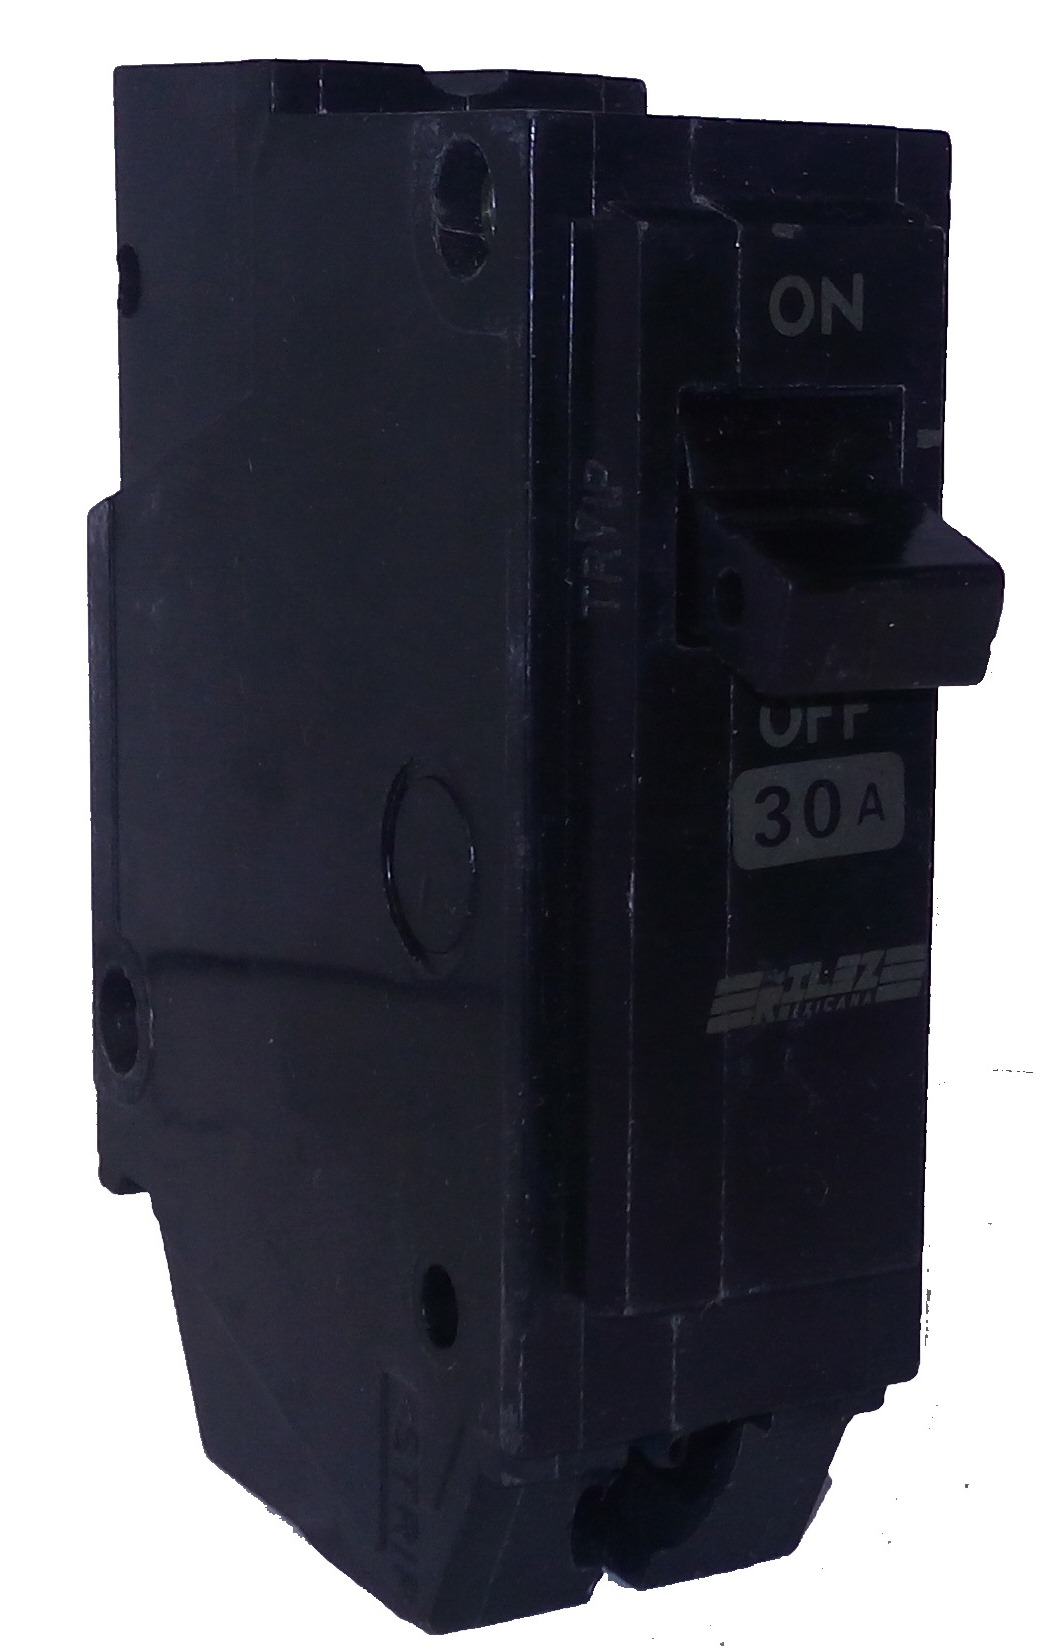 INTERRUPTOR TERM. 1 X 30 A TIPO QP